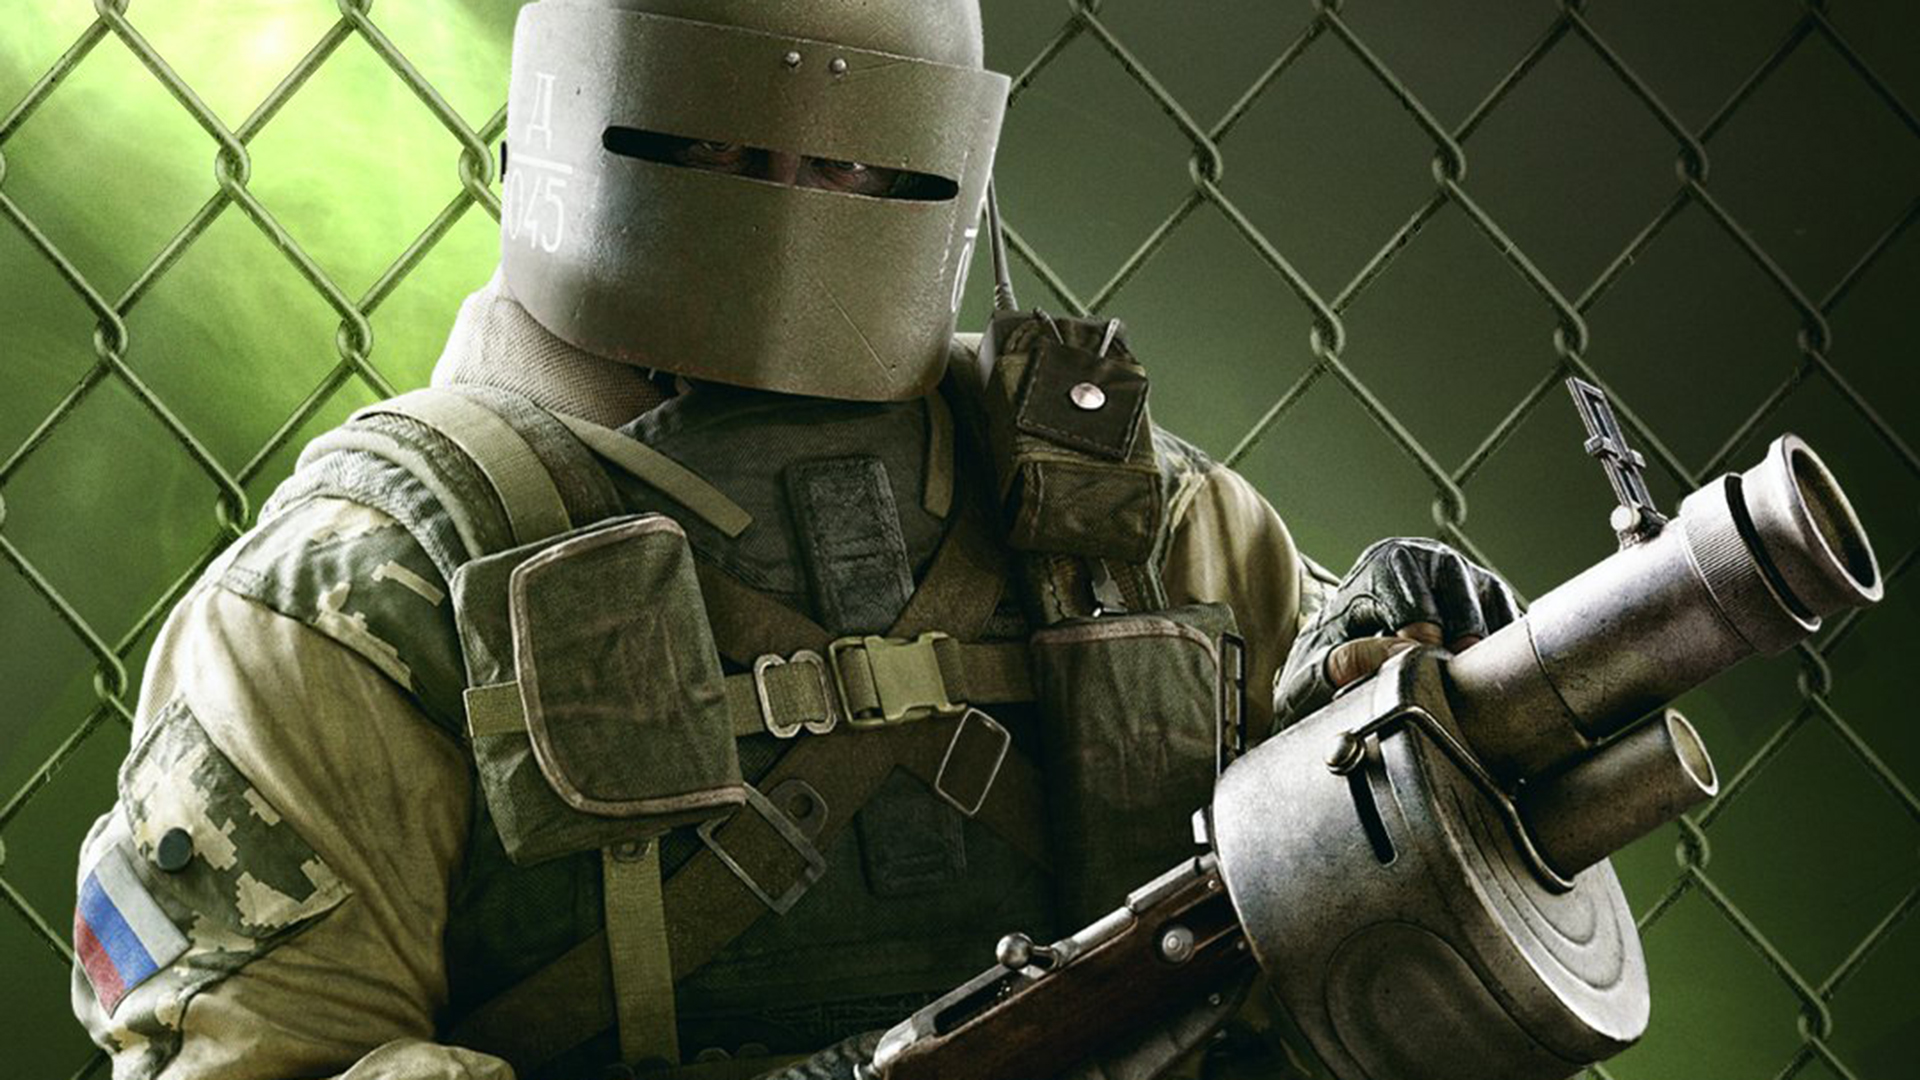 rainbow-six-siege-just-got-much-better-with-nvidia-dlss